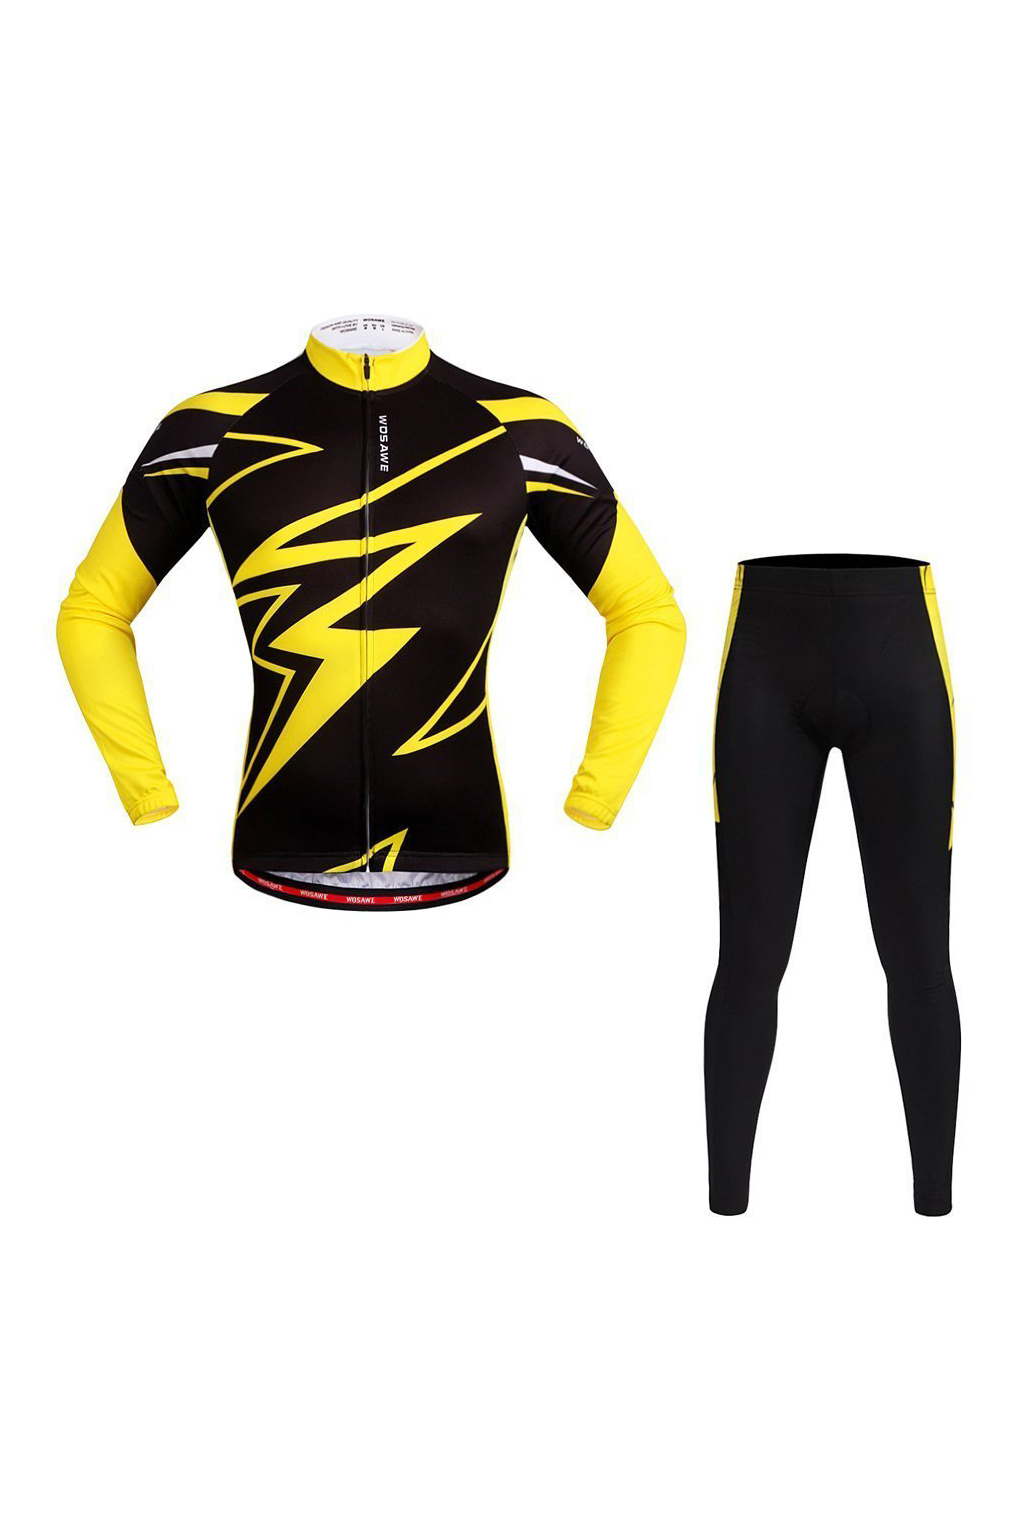 Super Sellwosawe Mens Breathable Cycling Jersey 3d Padded Shorts Set(l Yellow & Black) To Rank First Among Similar Products